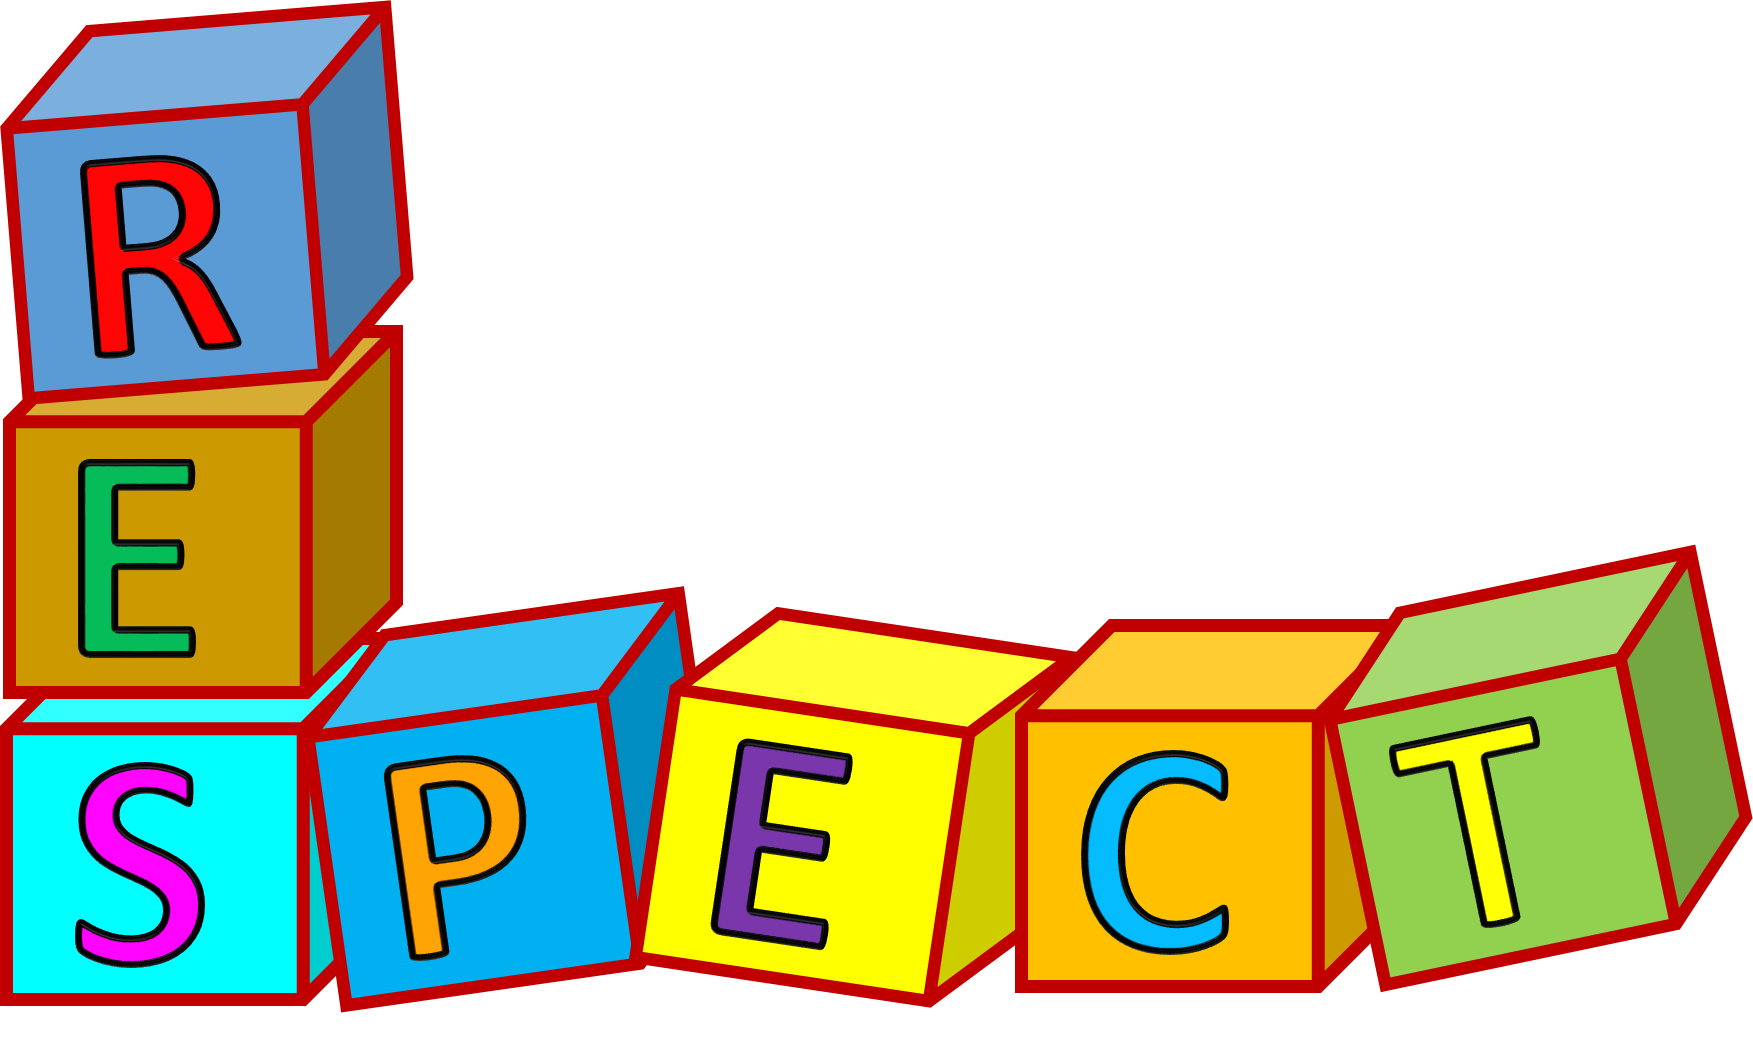 Respect clipart graphic transparent library